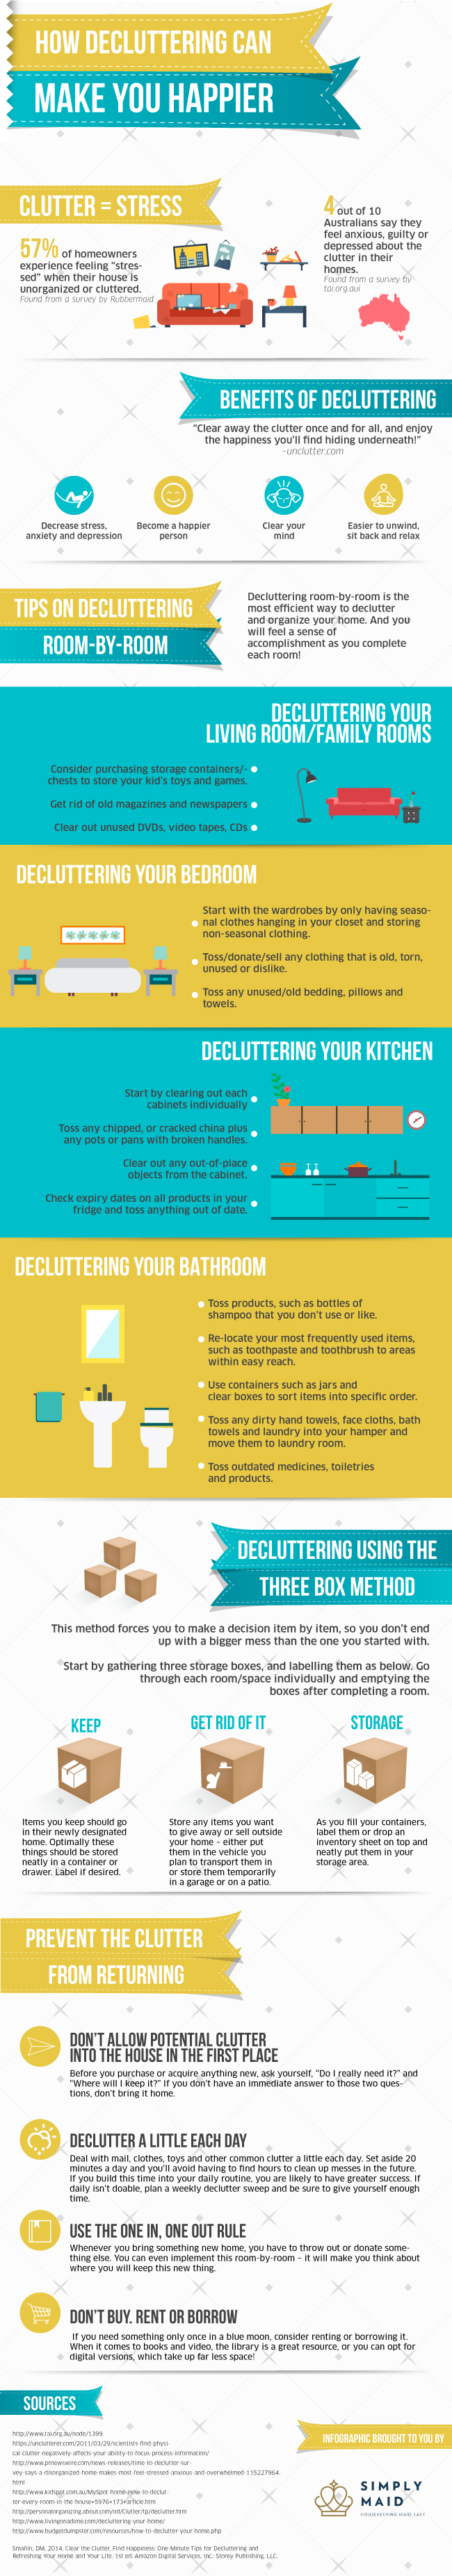 Home de-cluttering infographic by simply maid